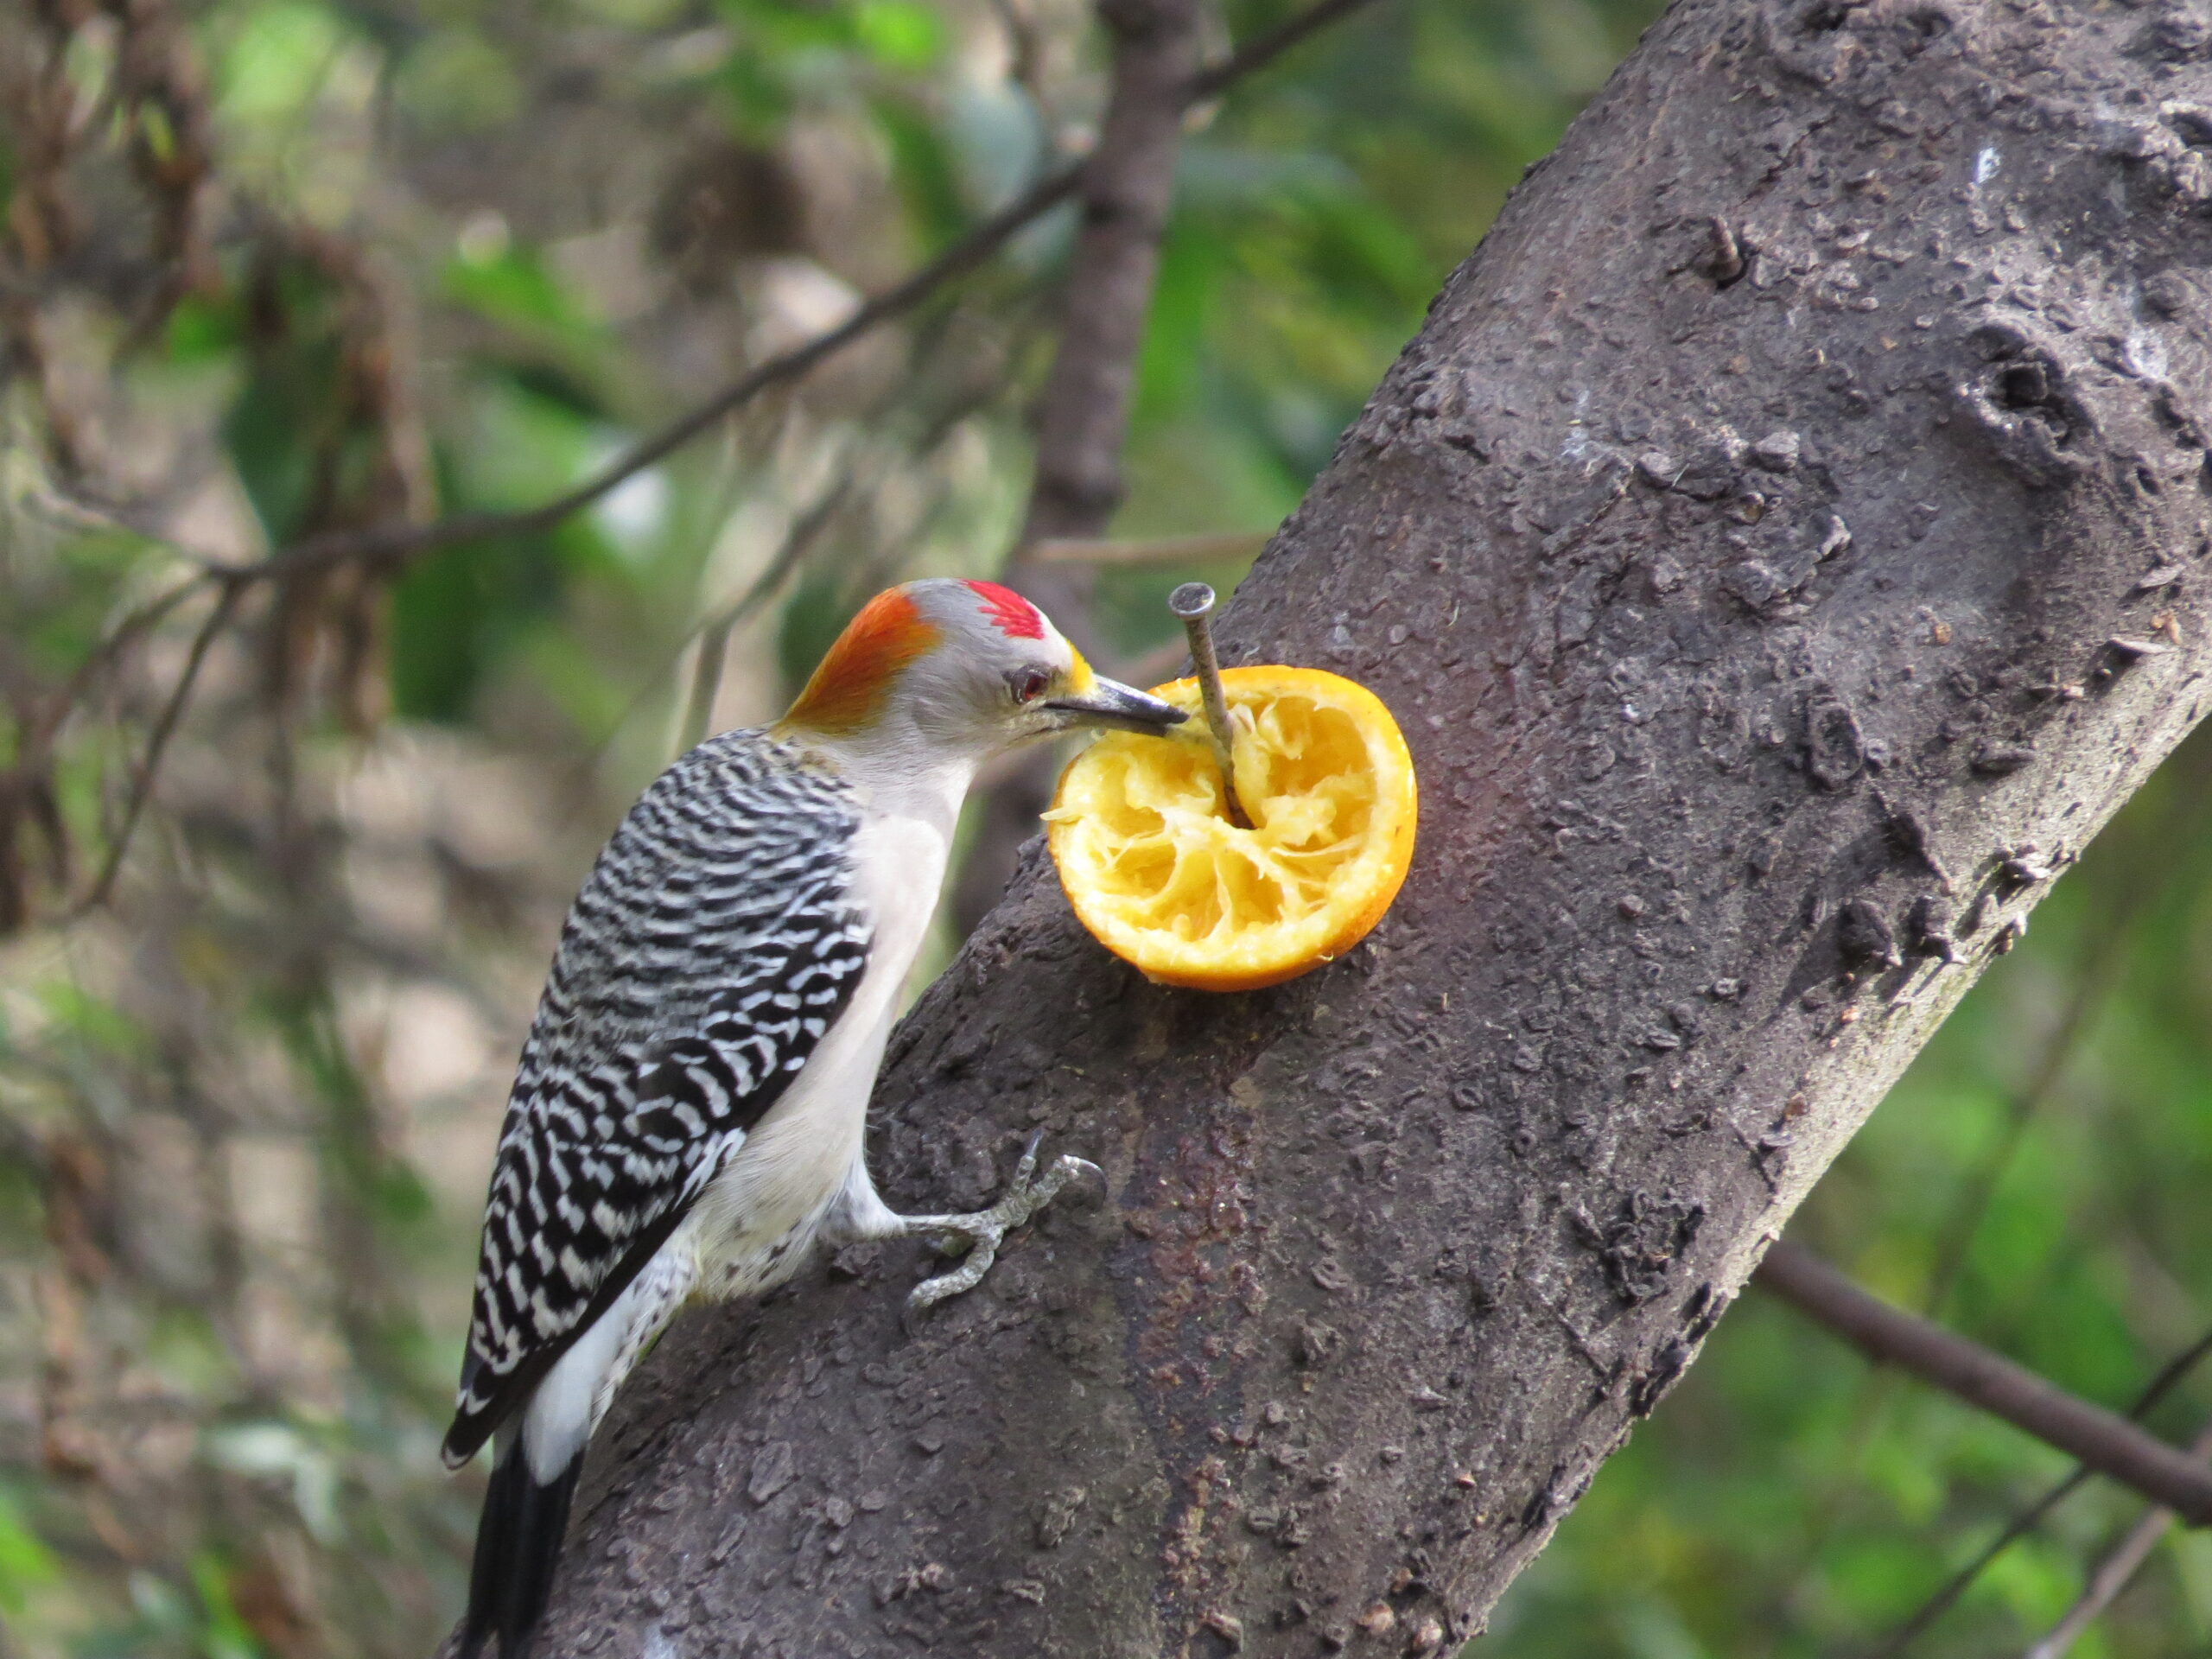 Golden-fronted Woodpecker at Natl Butterfly Ctr by Lora Reynolds